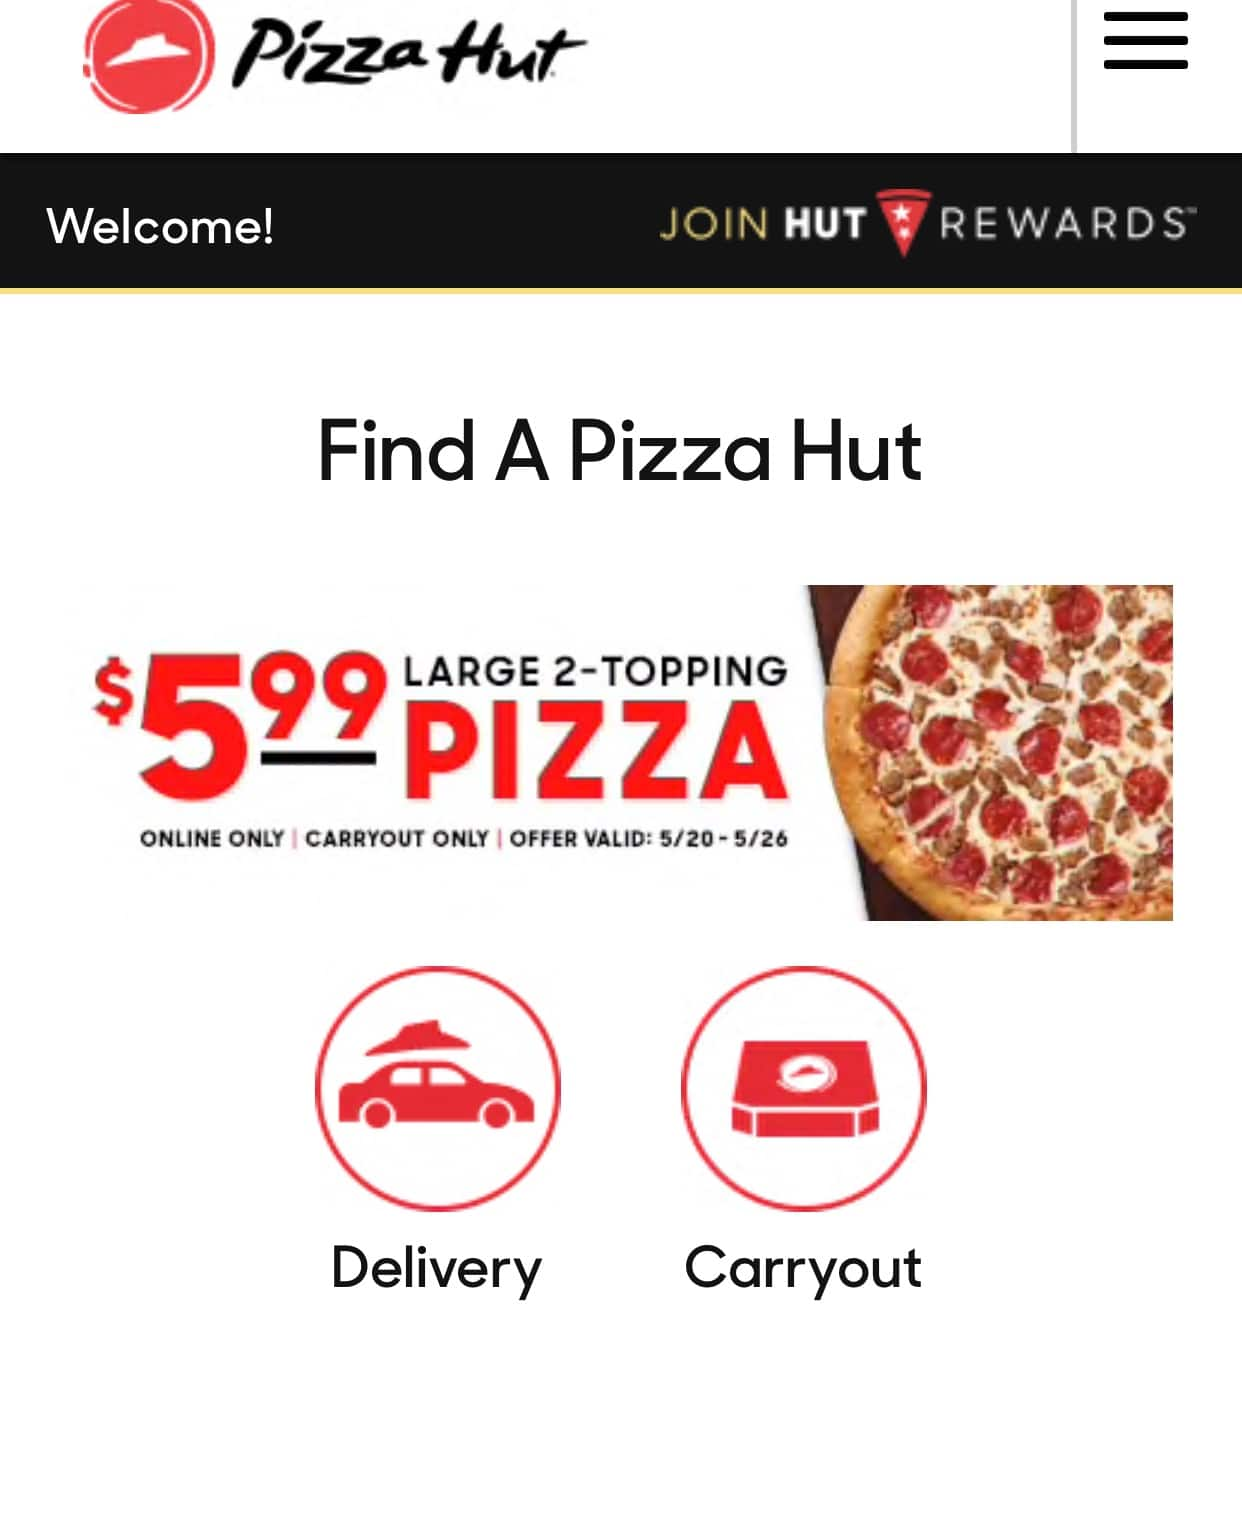 Pizza Hut Large 2 Topping Pizza 5 99 Online Carryout Only Ymmv